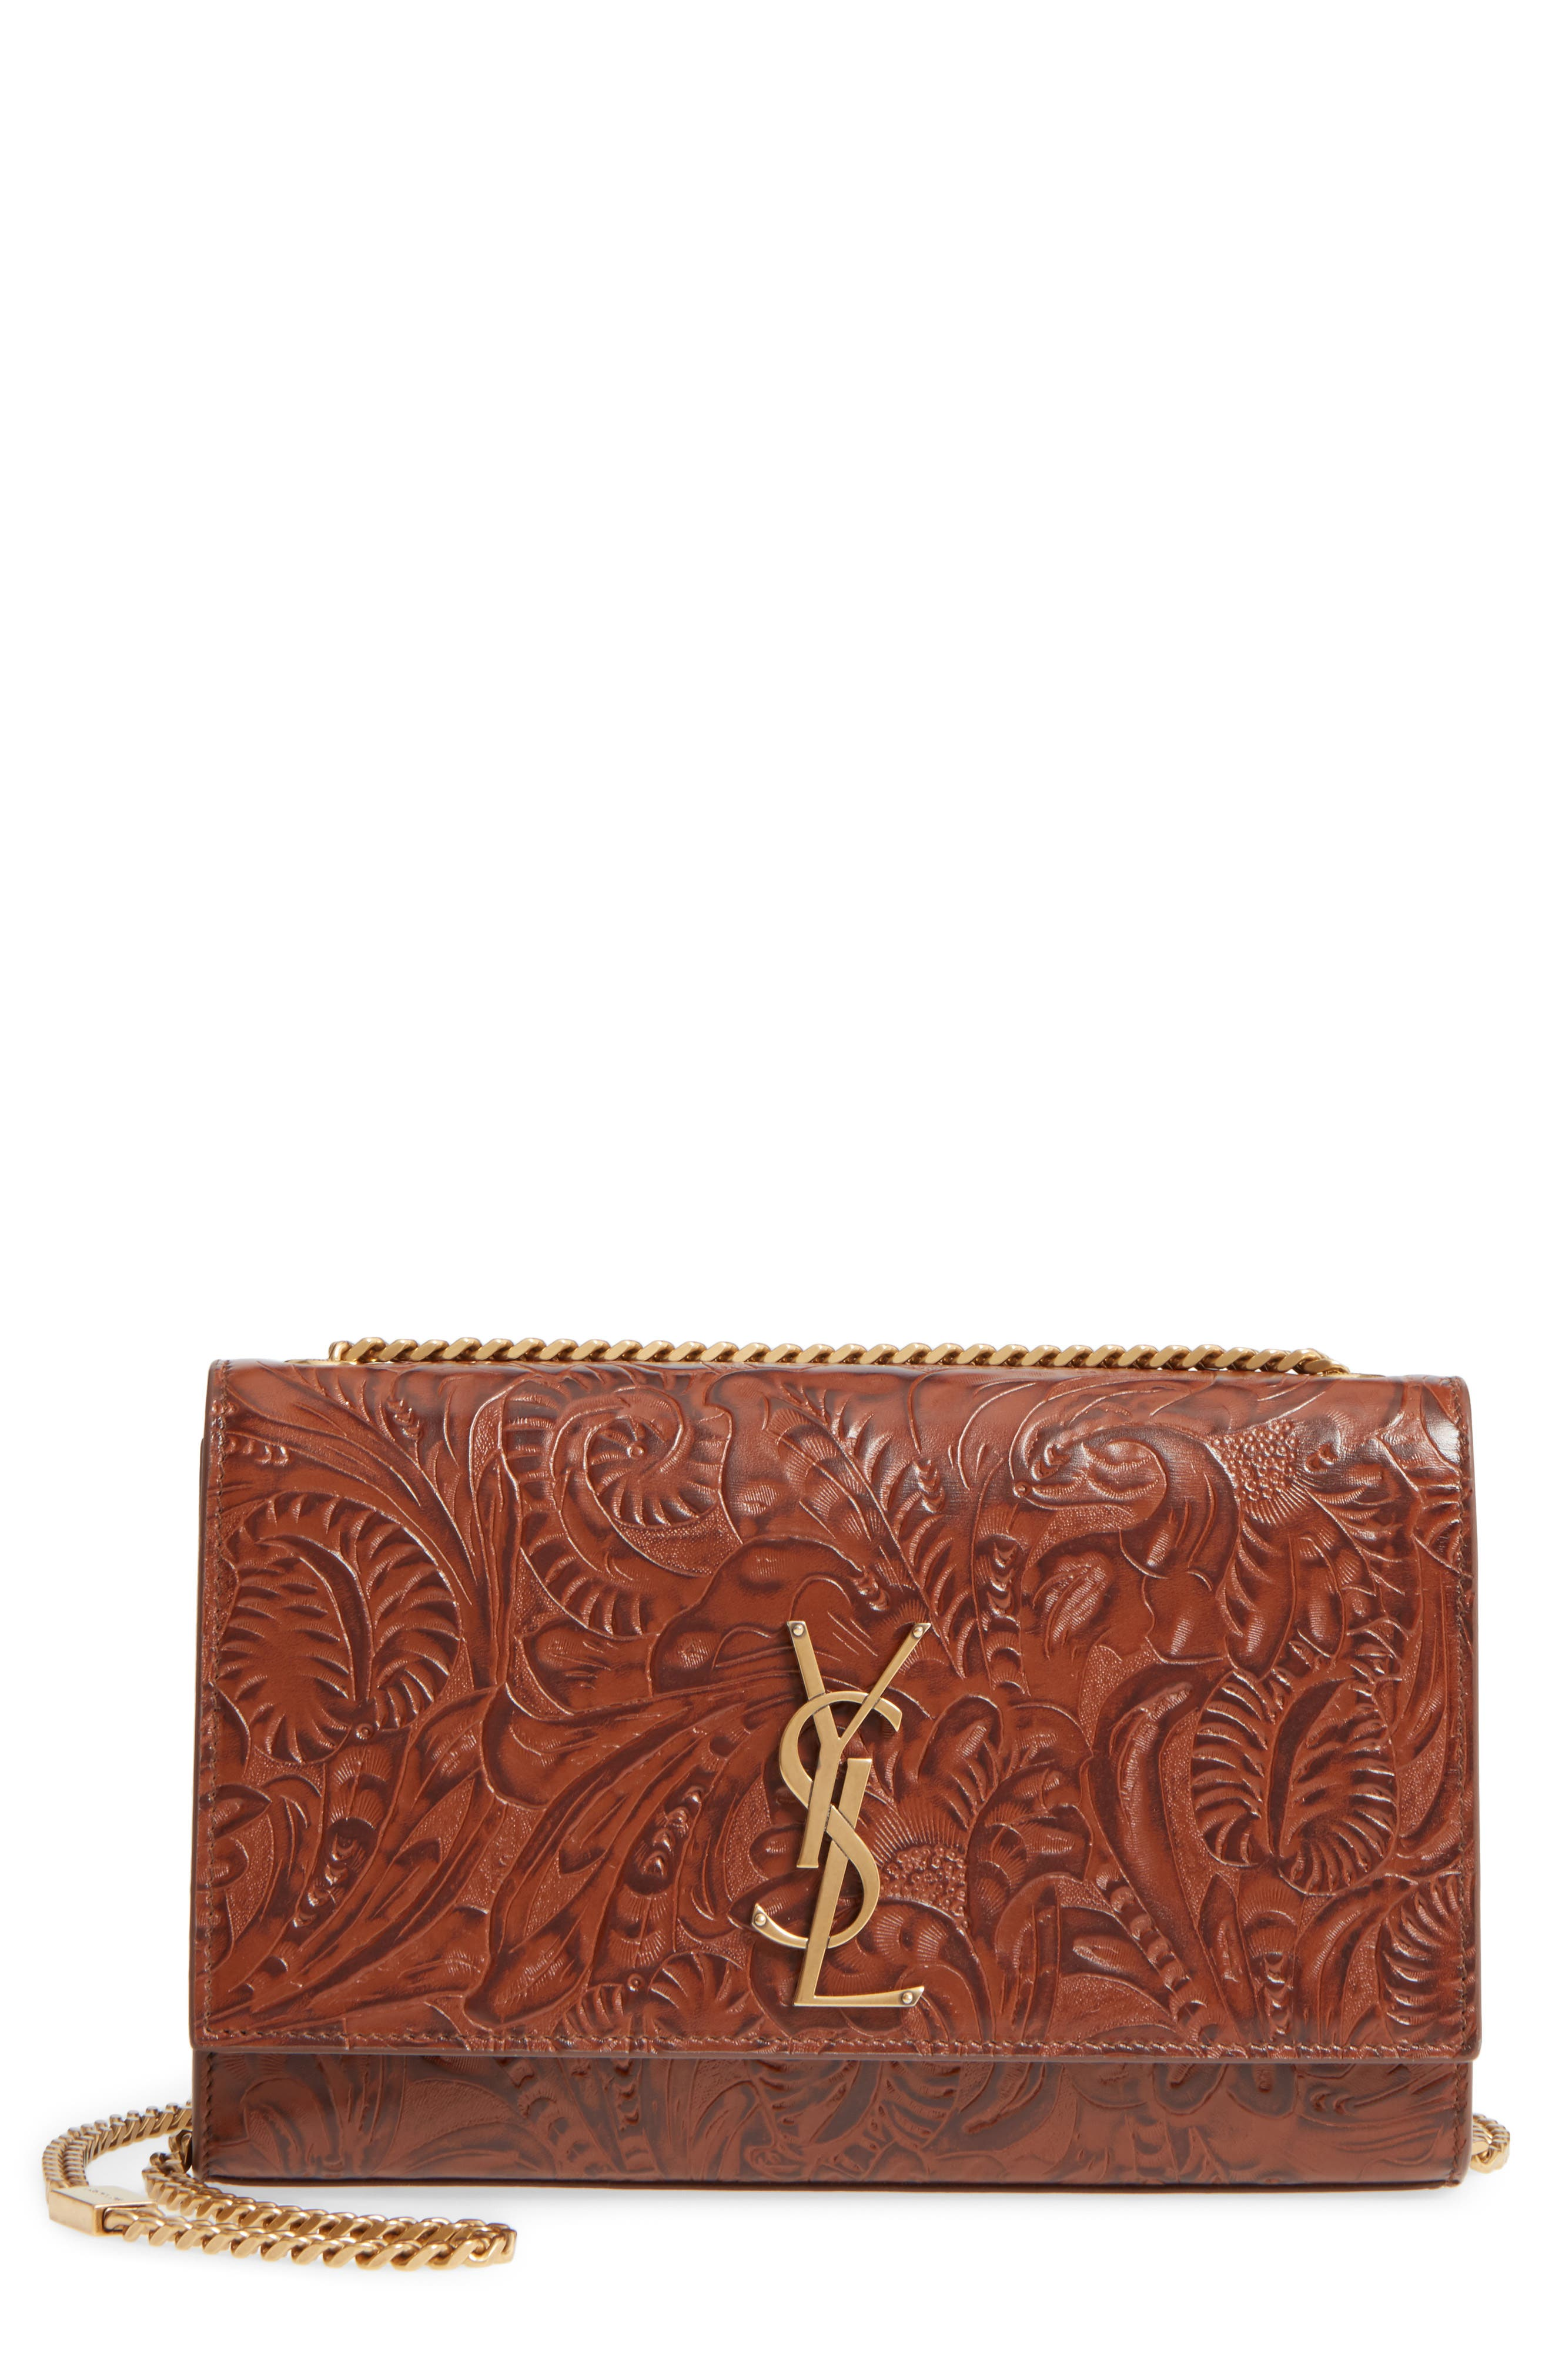 Medium Kate Floral Tooling Embossed Leather Crossbody Bag,                         Main,                         color, 233